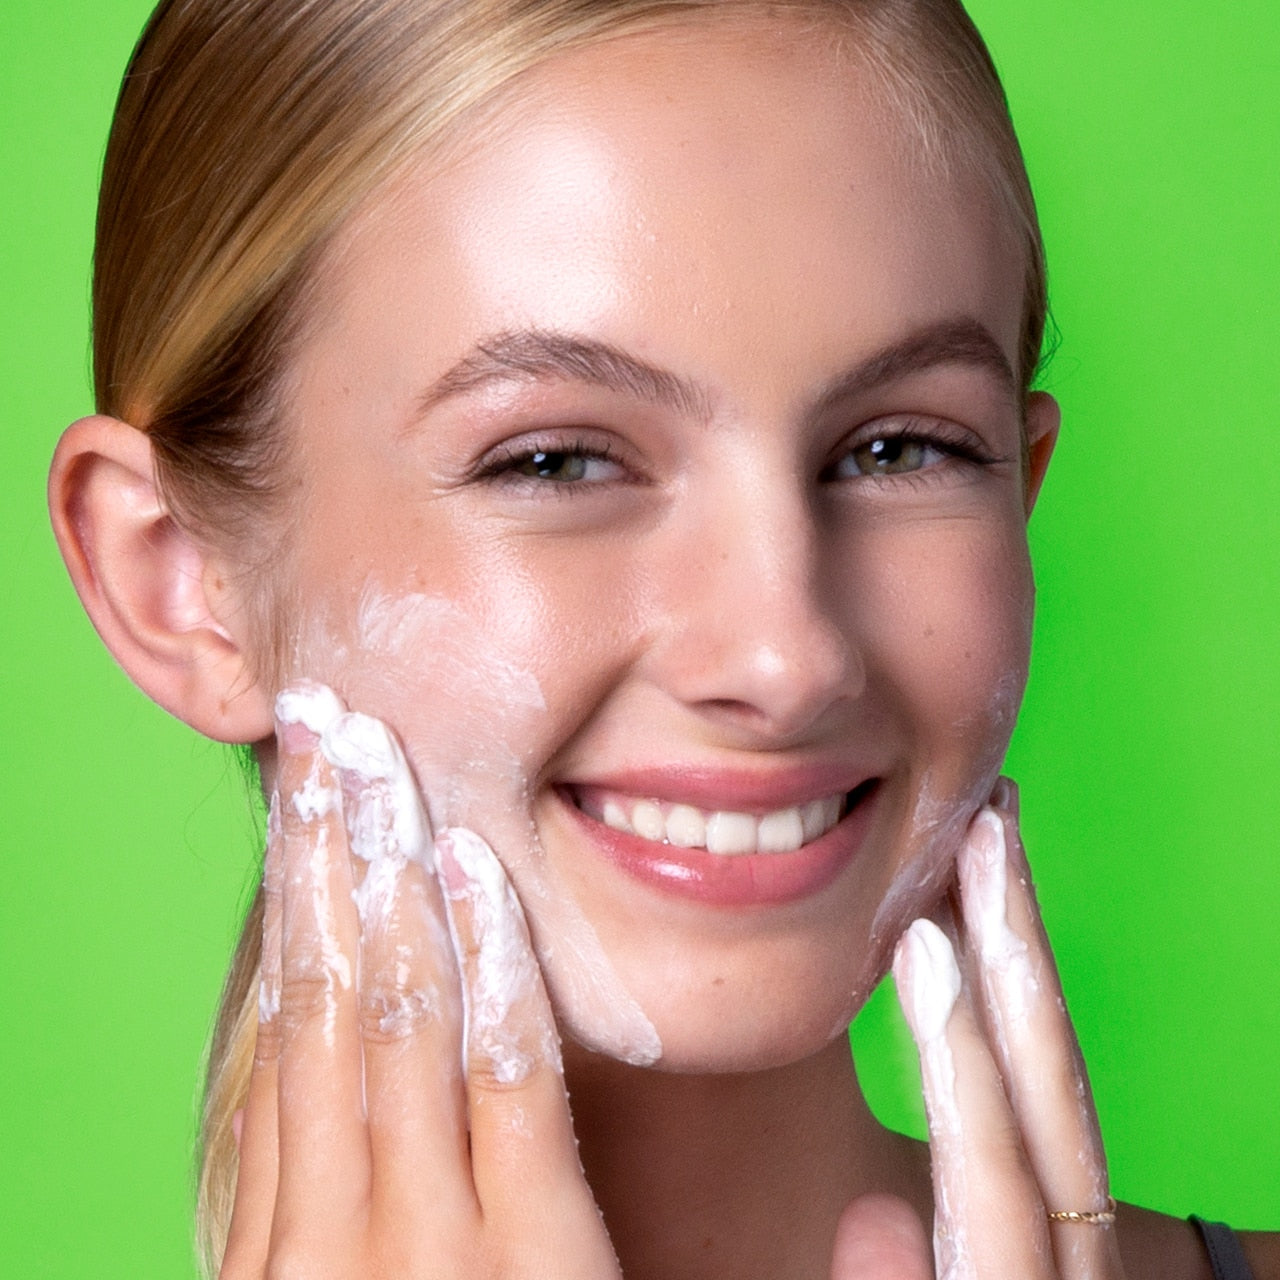 Girl scrubbing face with Clarify Cleansing Scrub